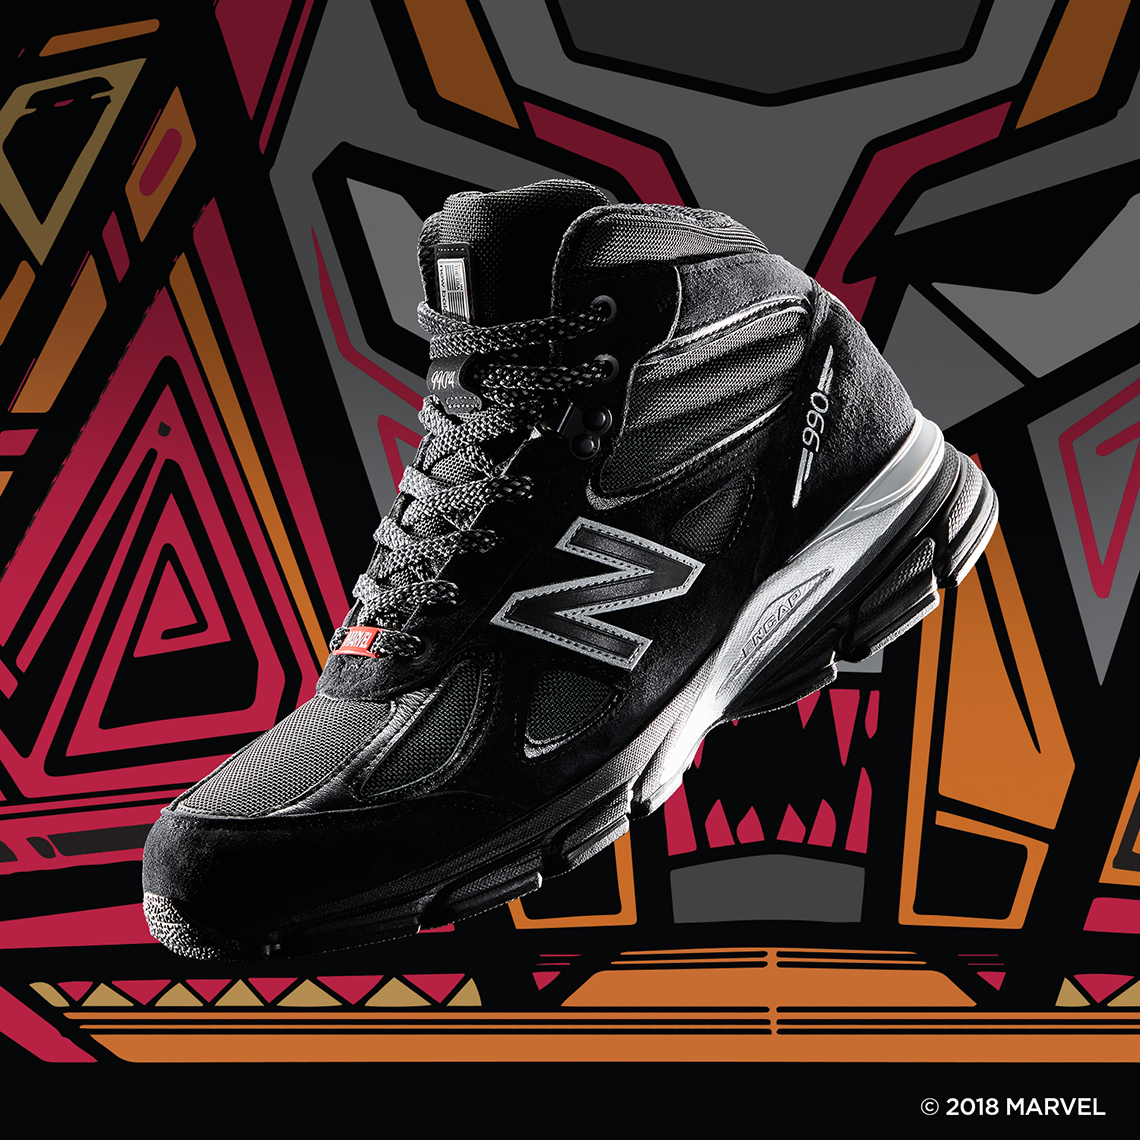 a7012816bc1 Jimmy Jazz x Marvel Black Panther x New Balance Collaboration ...